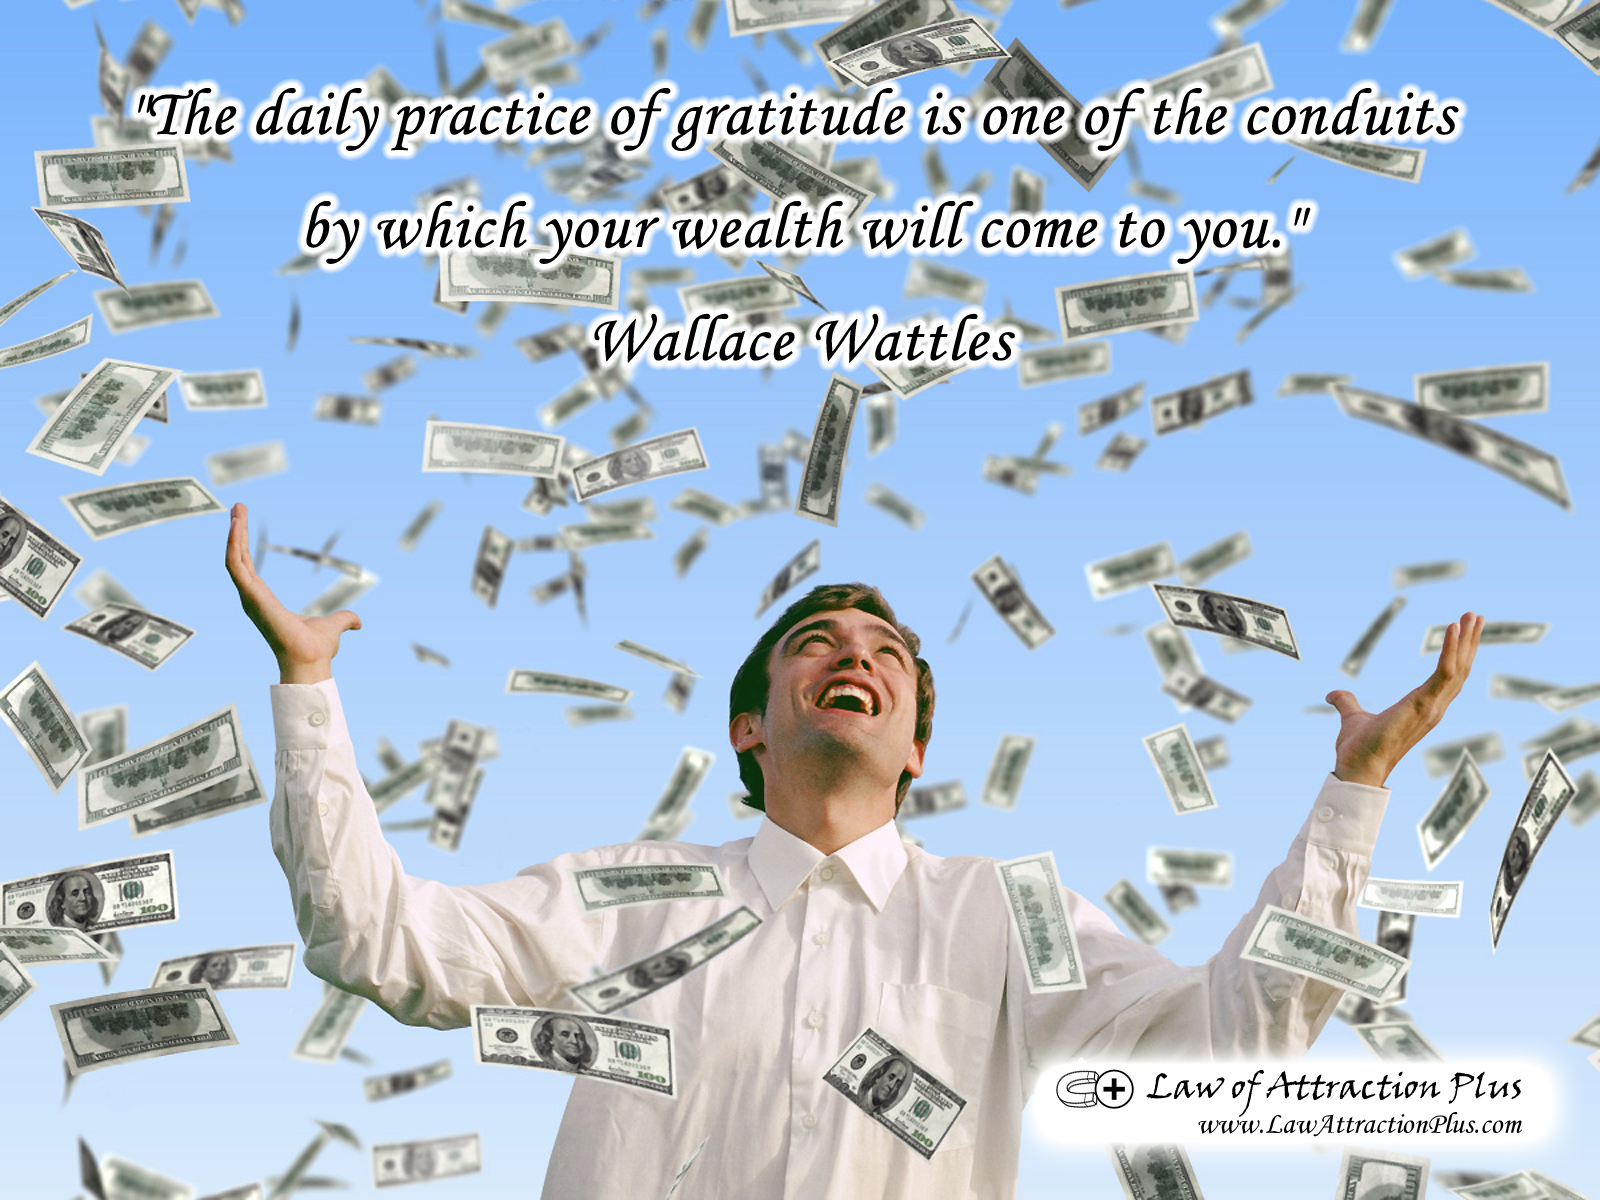 Free Daily Quotes The Daily Practice Of Gratitude Is One Of The Conduitswhich